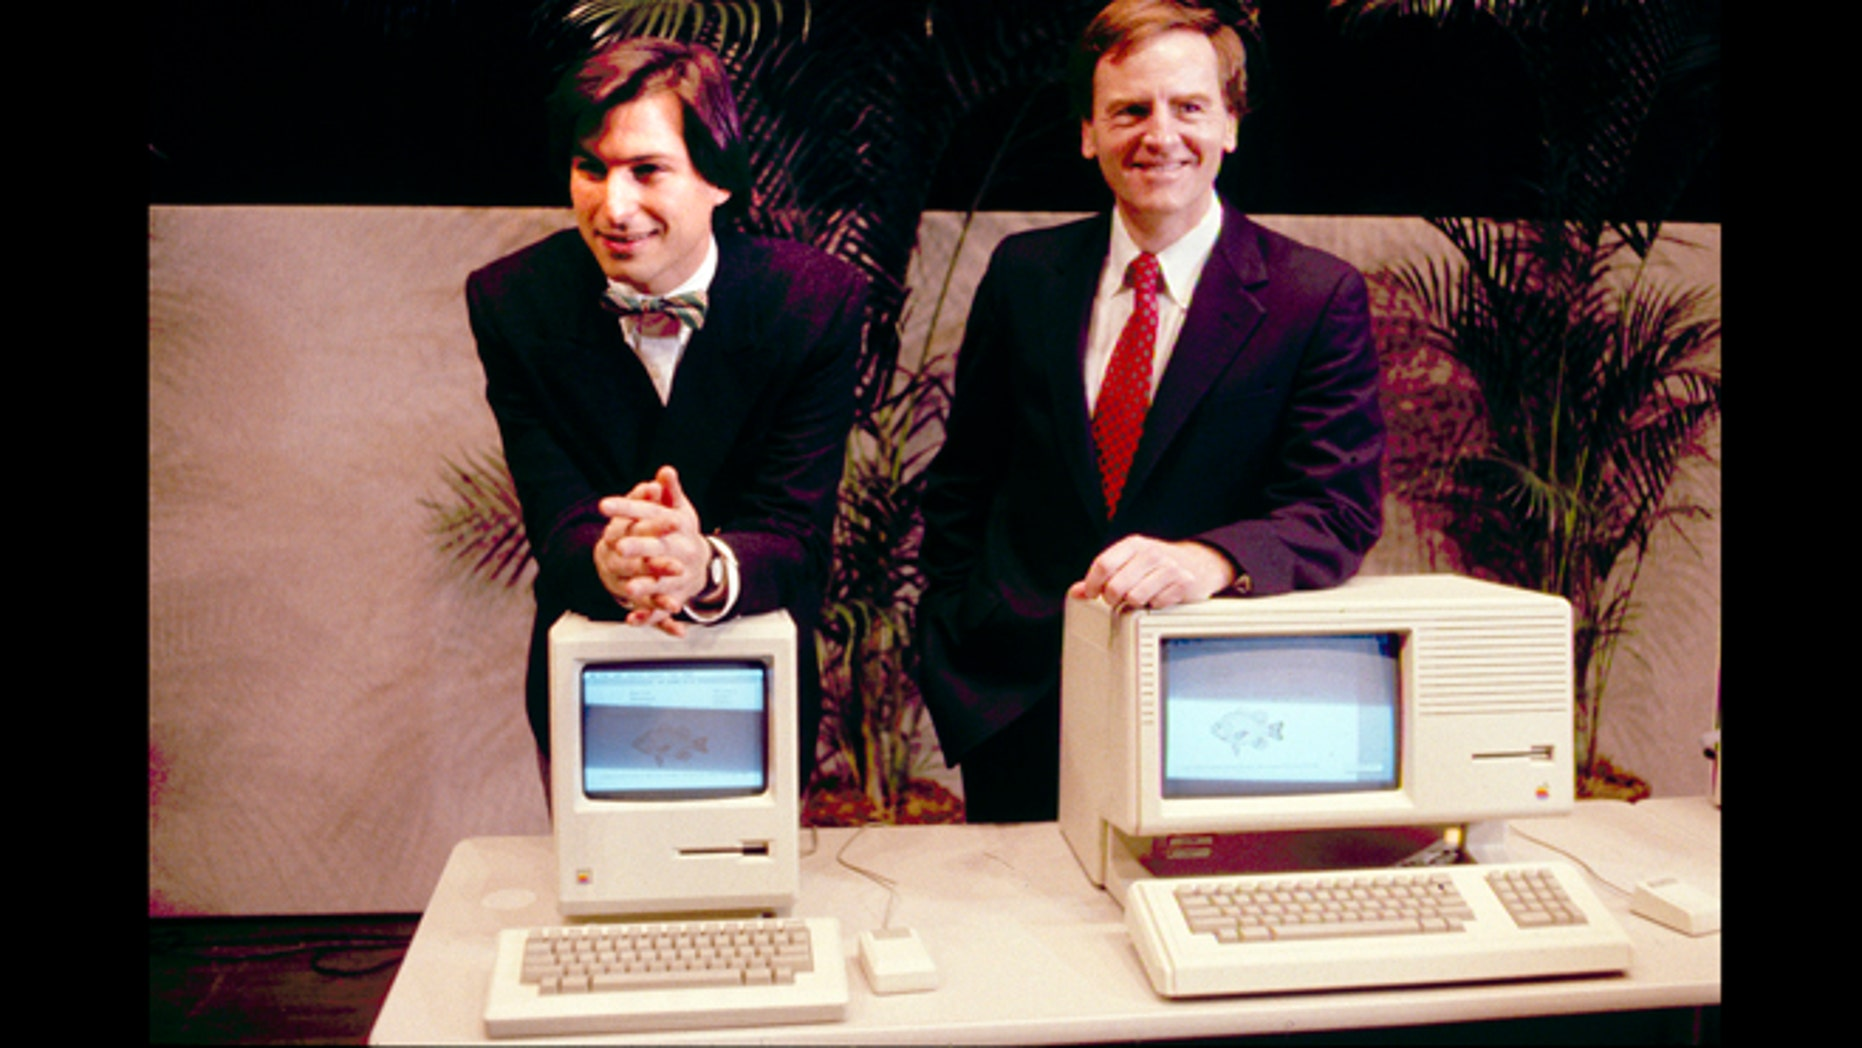 This January 1984 photo shows Apple CEO Steven P. Jobs, left and President John Sculley presenting the new Macintosh Desktop Computer in January 1984 at a shareholder meeting in Cupertino, Calif. January 24, 2014, marks thirty years after the first Mac computer was introduced.